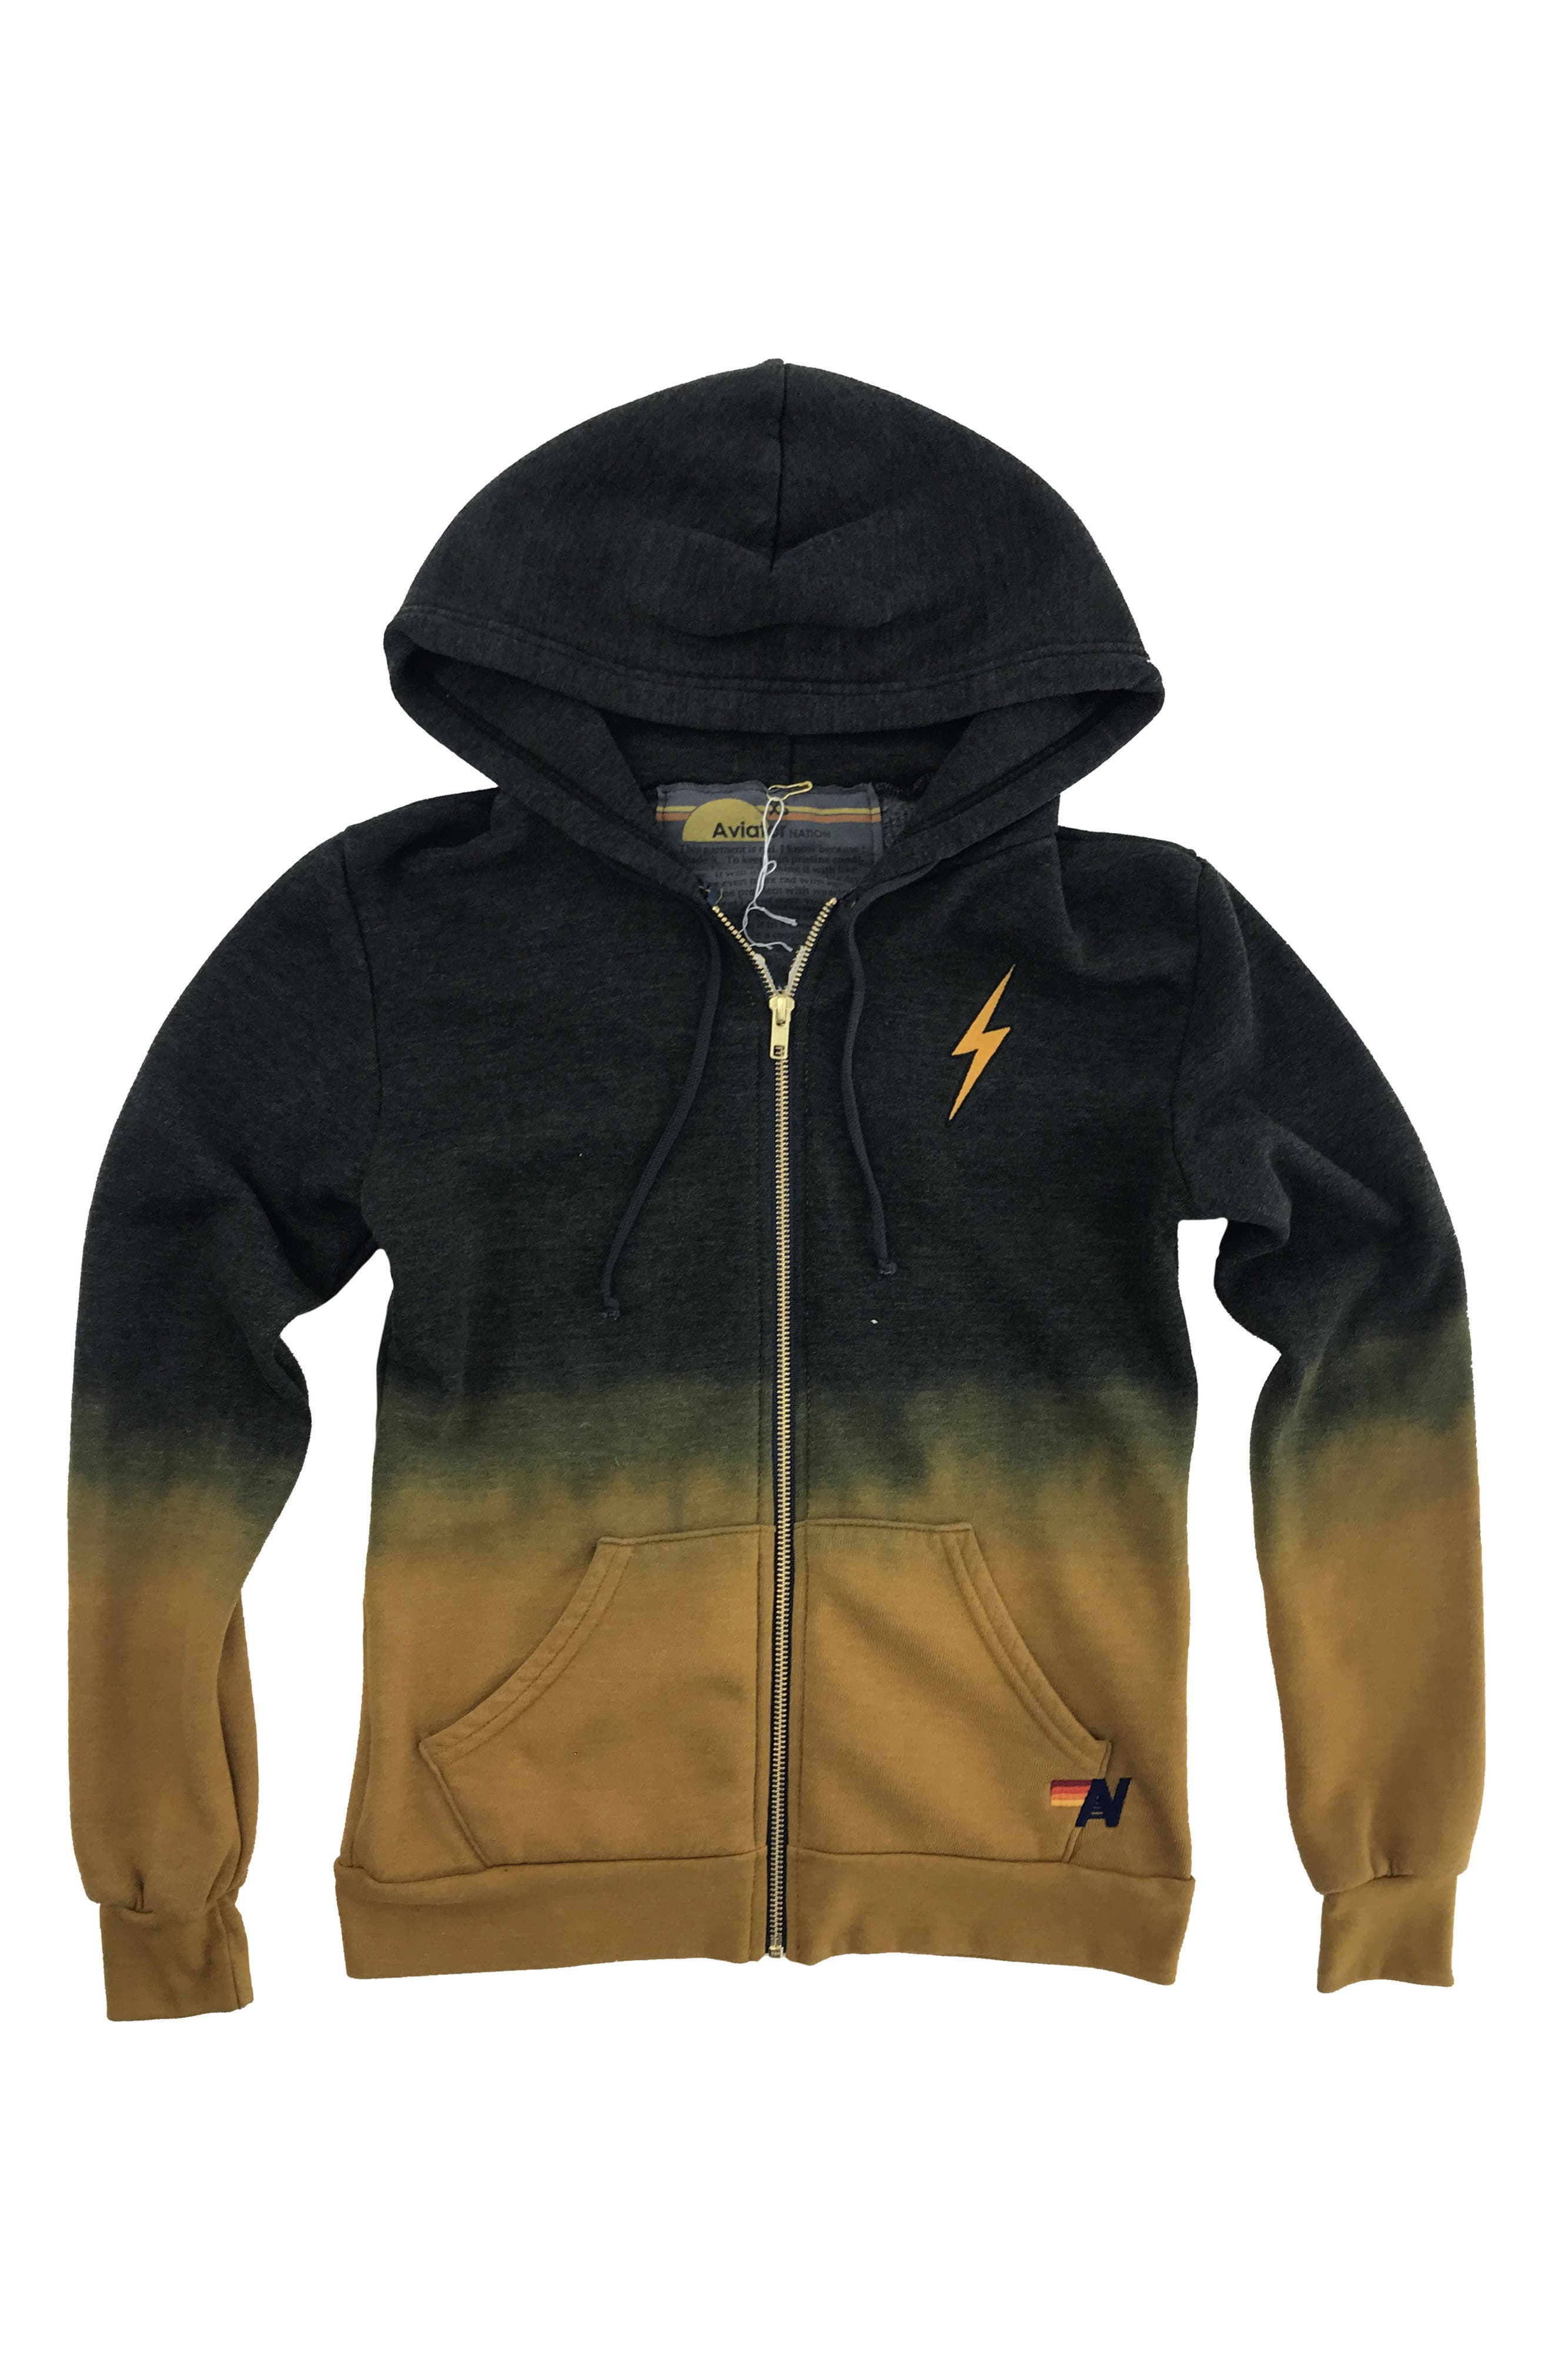 AVIATOR NATION Faded Bolt Embroidered Hoodie Jacket in Nugget Gold / Charcoal